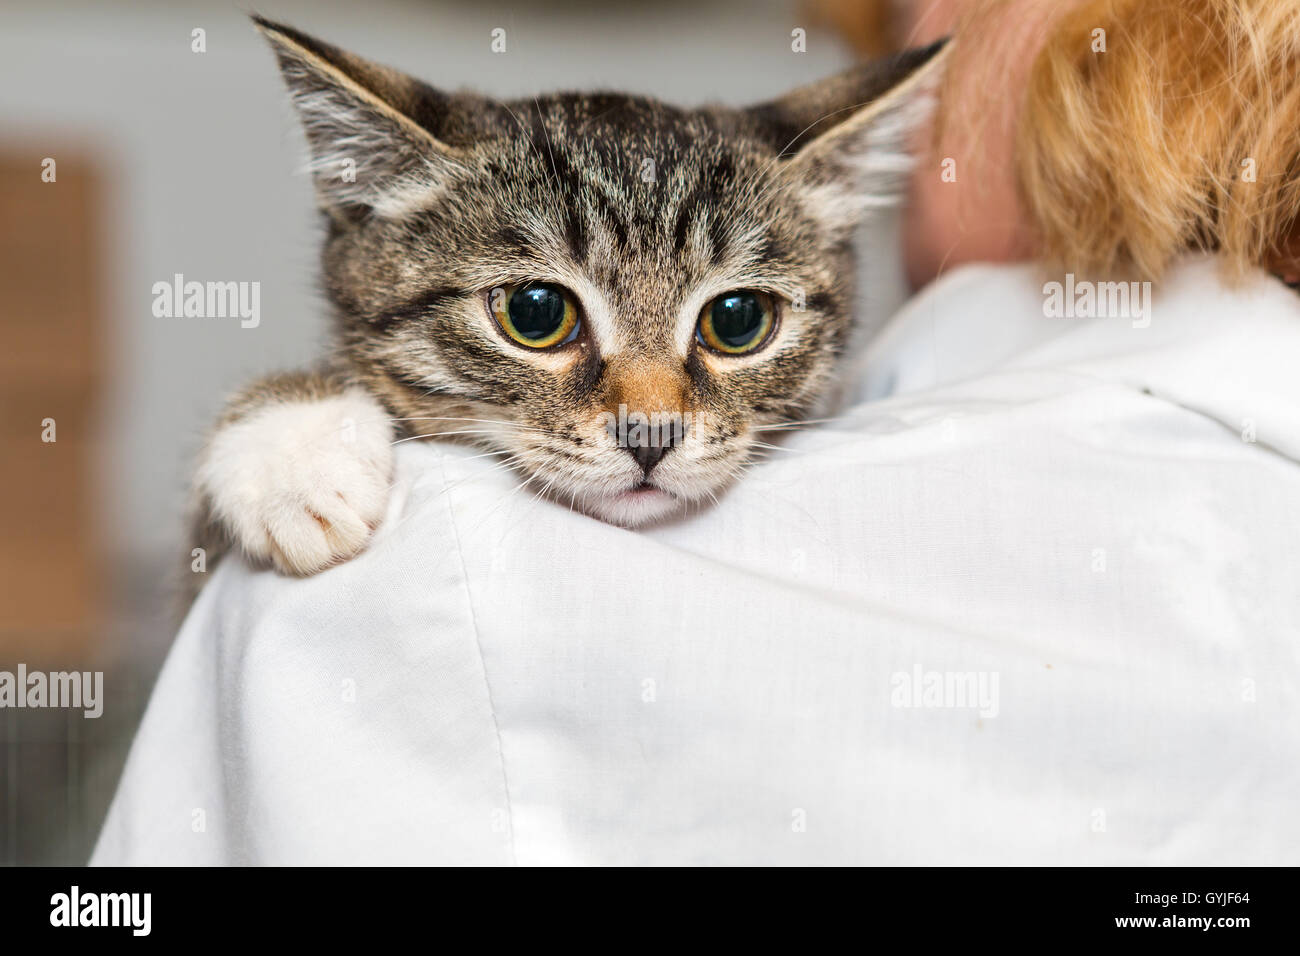 Small, frightened kitten into the hands of the physician of the shelter for homeless animals - Stock Image